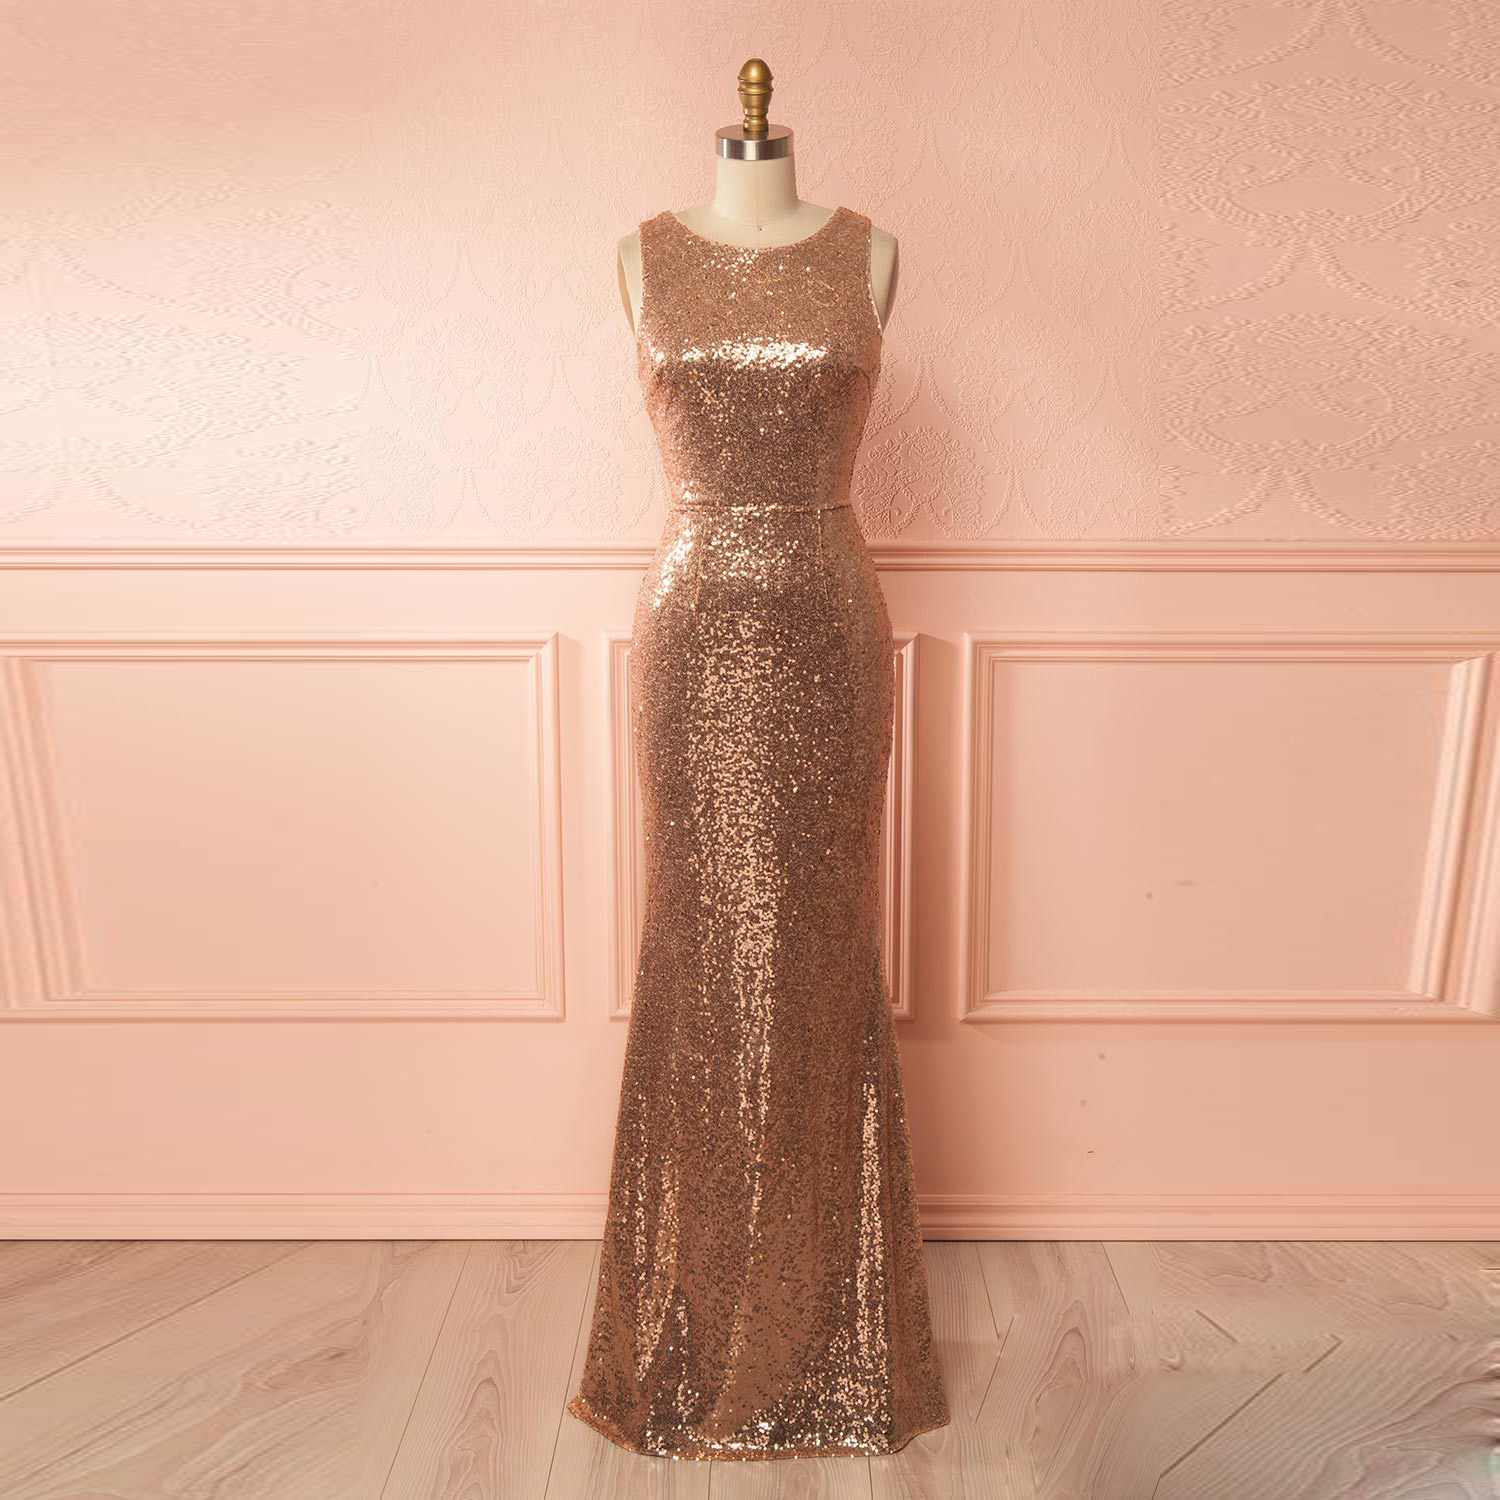 Rose 20gold 20sequin 20sleeveless 20mermaid 20prom 20dress original d4b5bc1d8